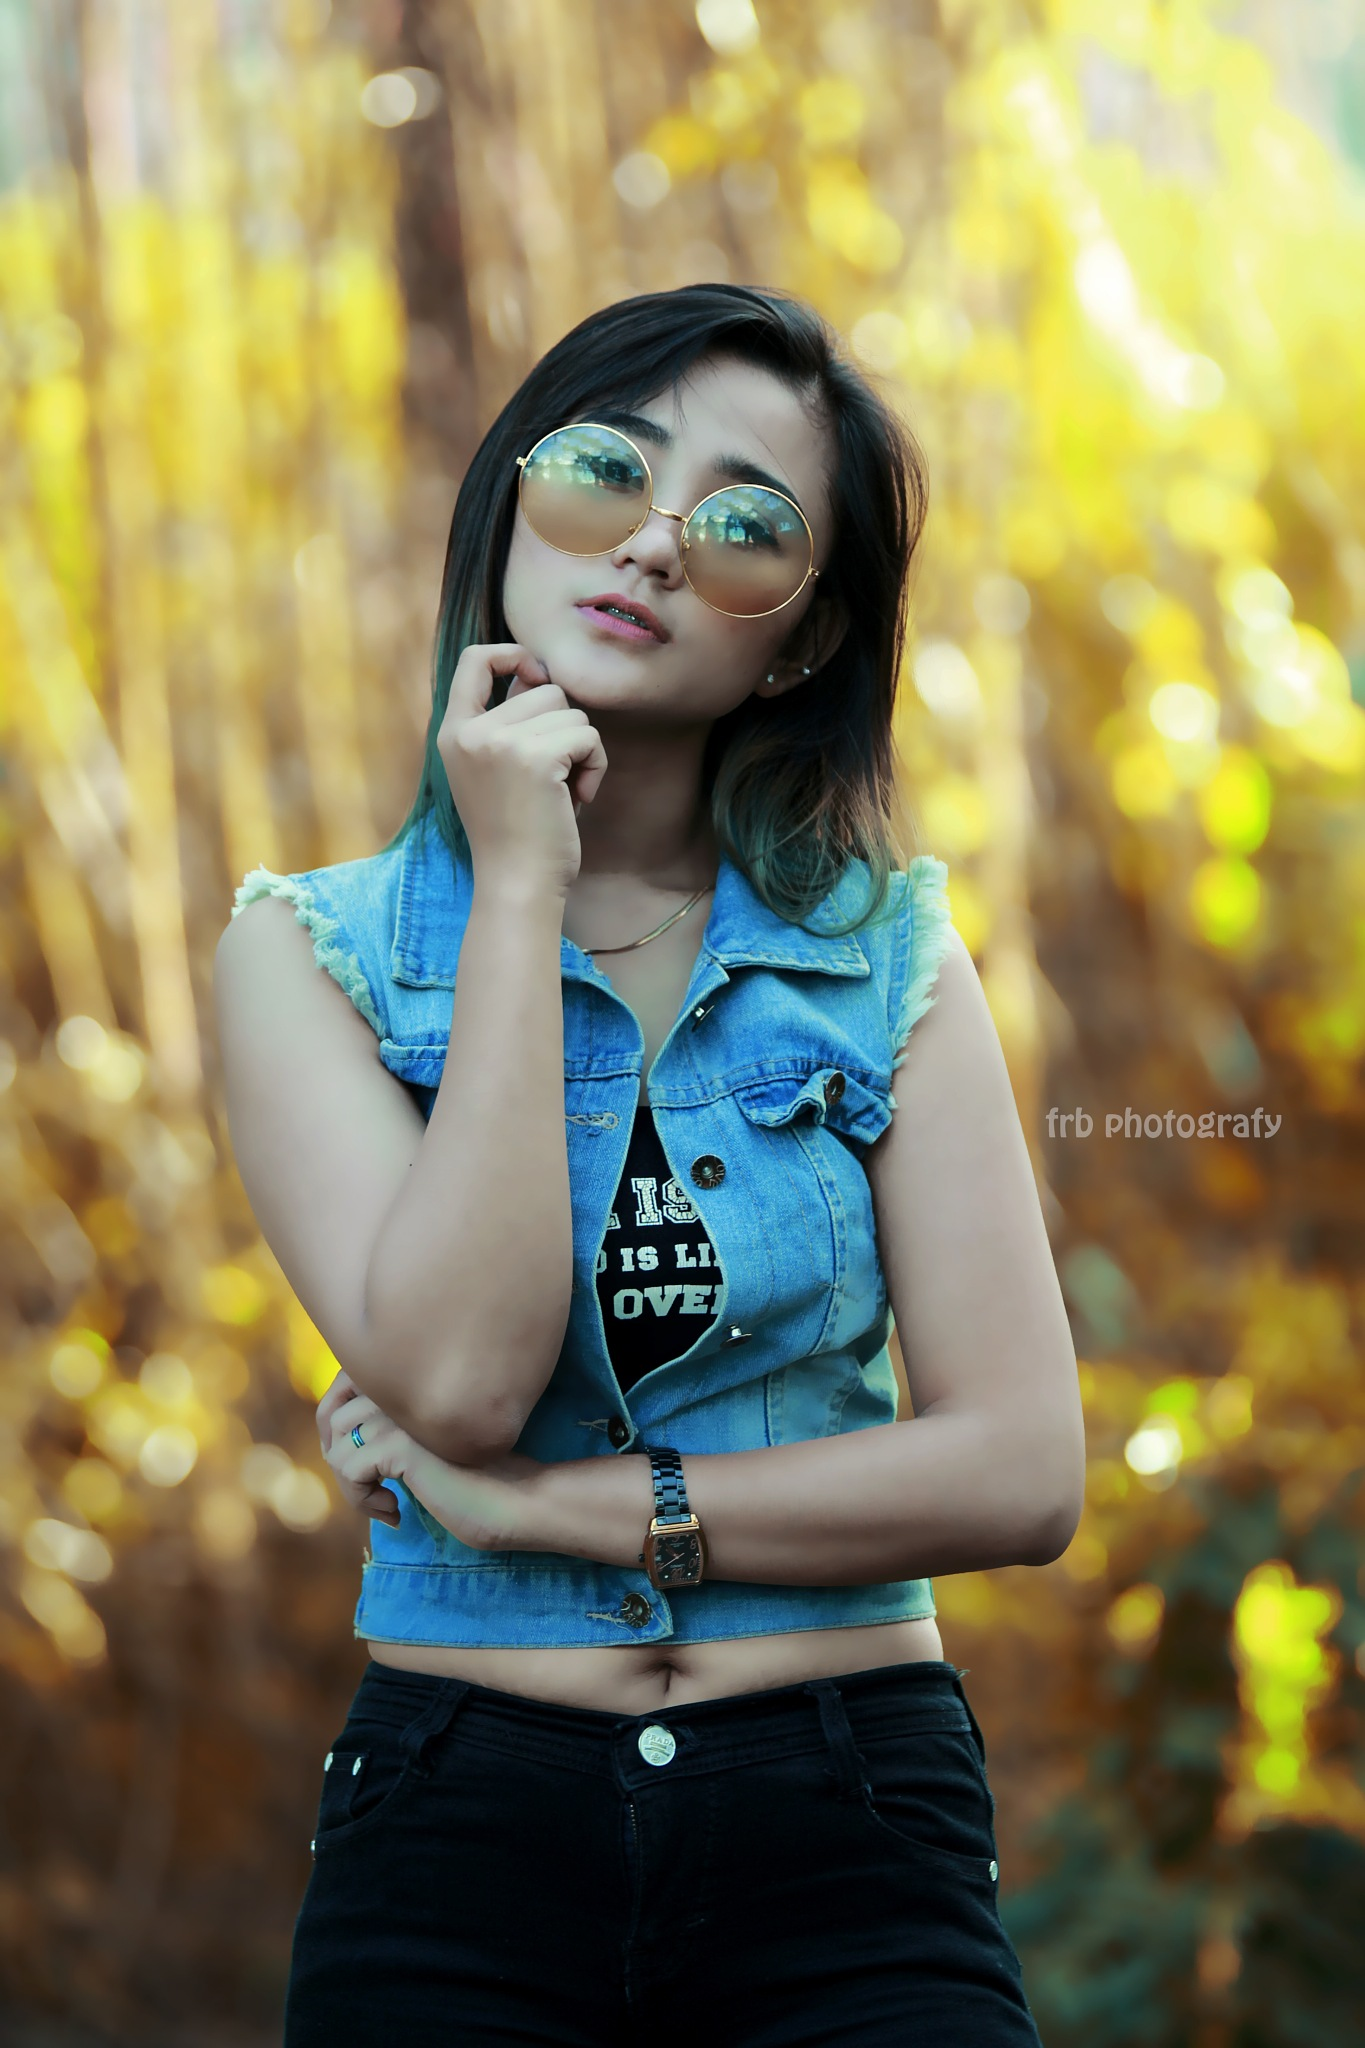 Untitled by frengkiyanto